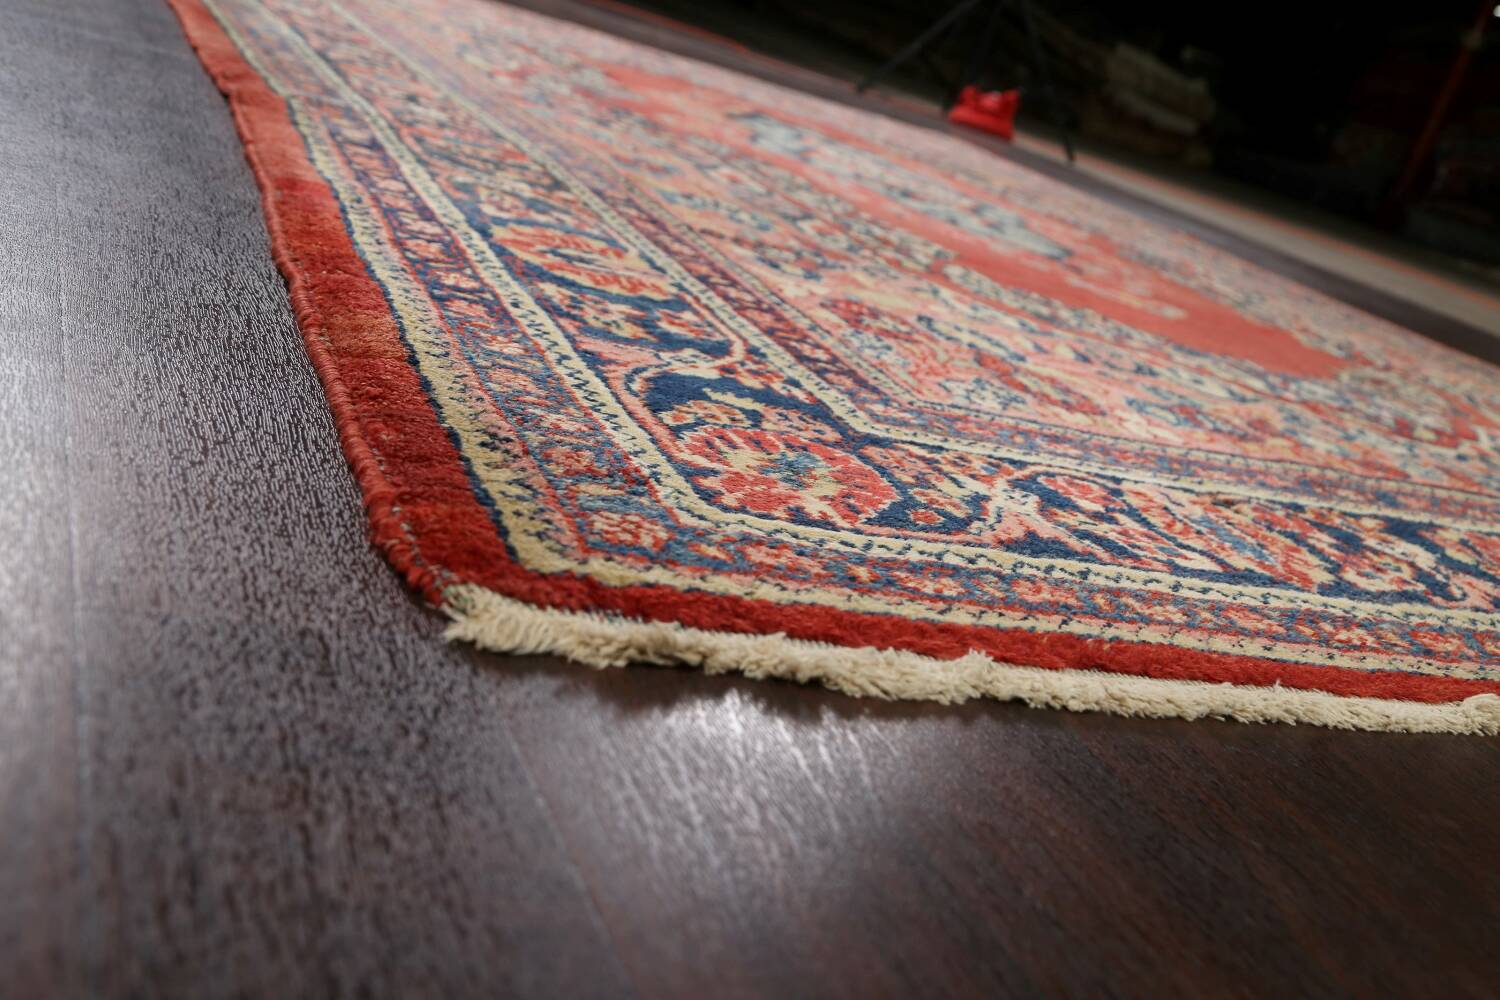 Antique Floral Mahal Persian Area Rug 8x11 image 6